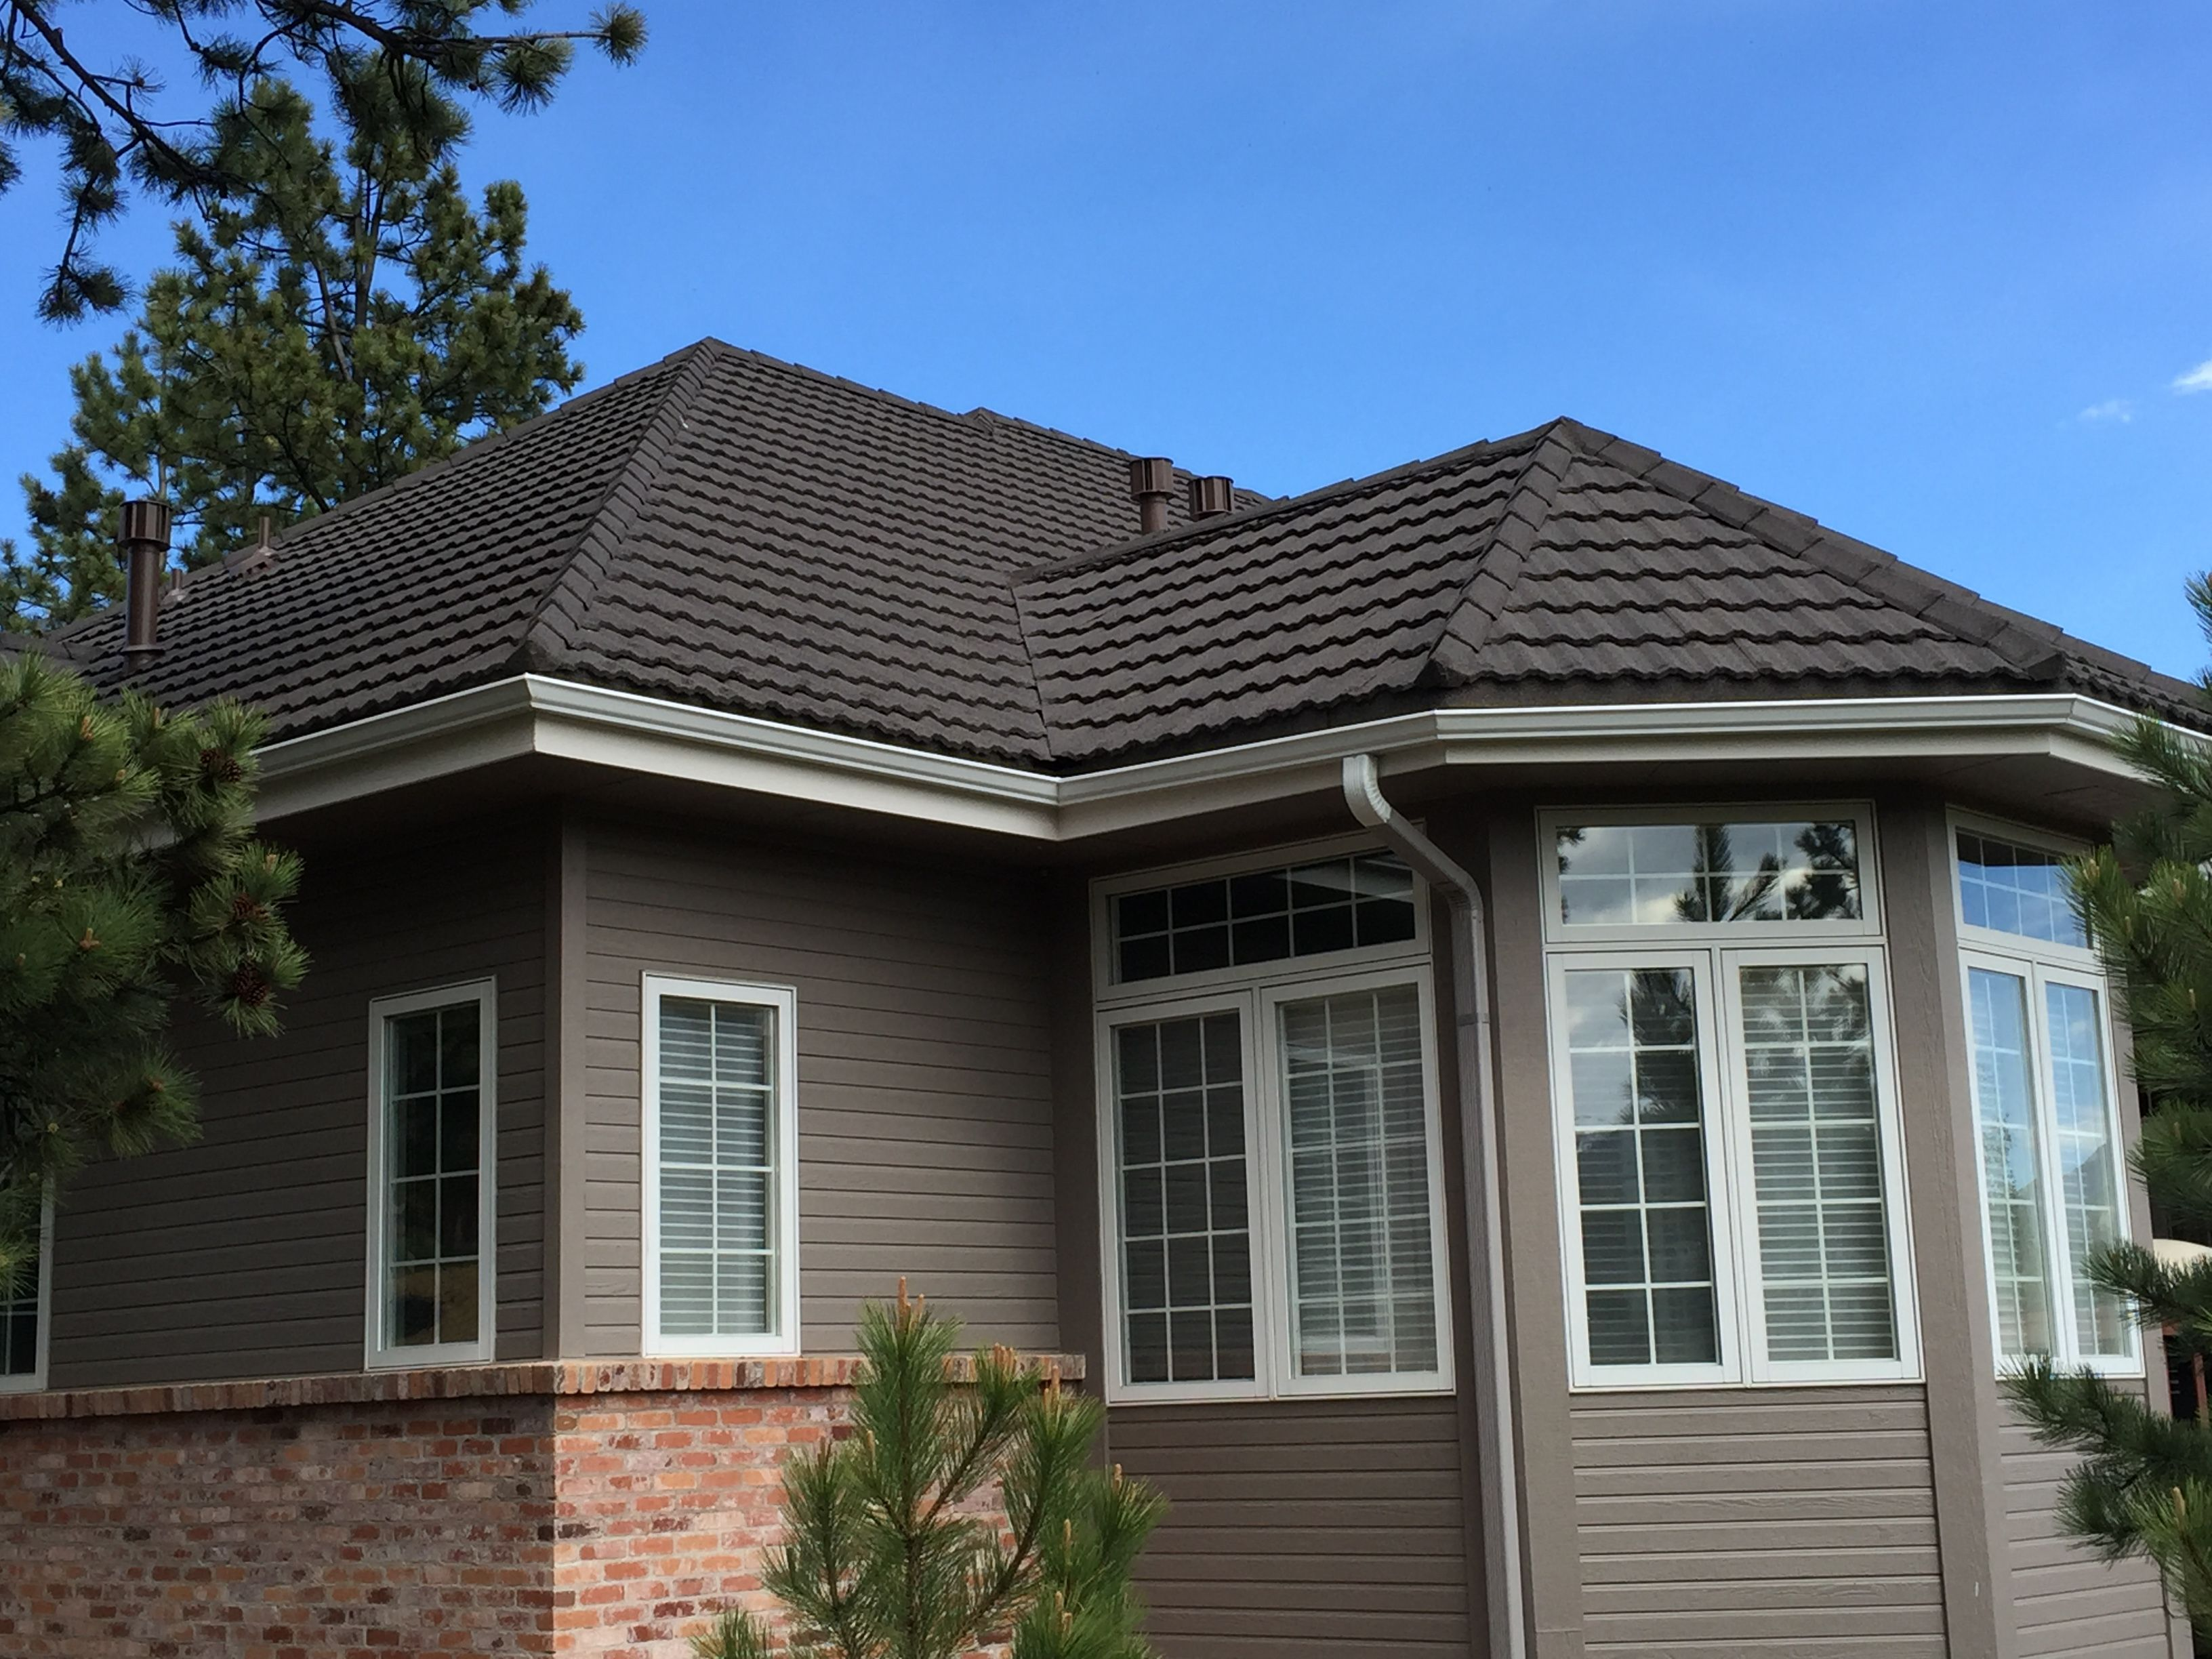 Gerard Stone Coated Metal Roof Made To Look Like Tile Metal Roof Classic Tile Metal Roofing Systems